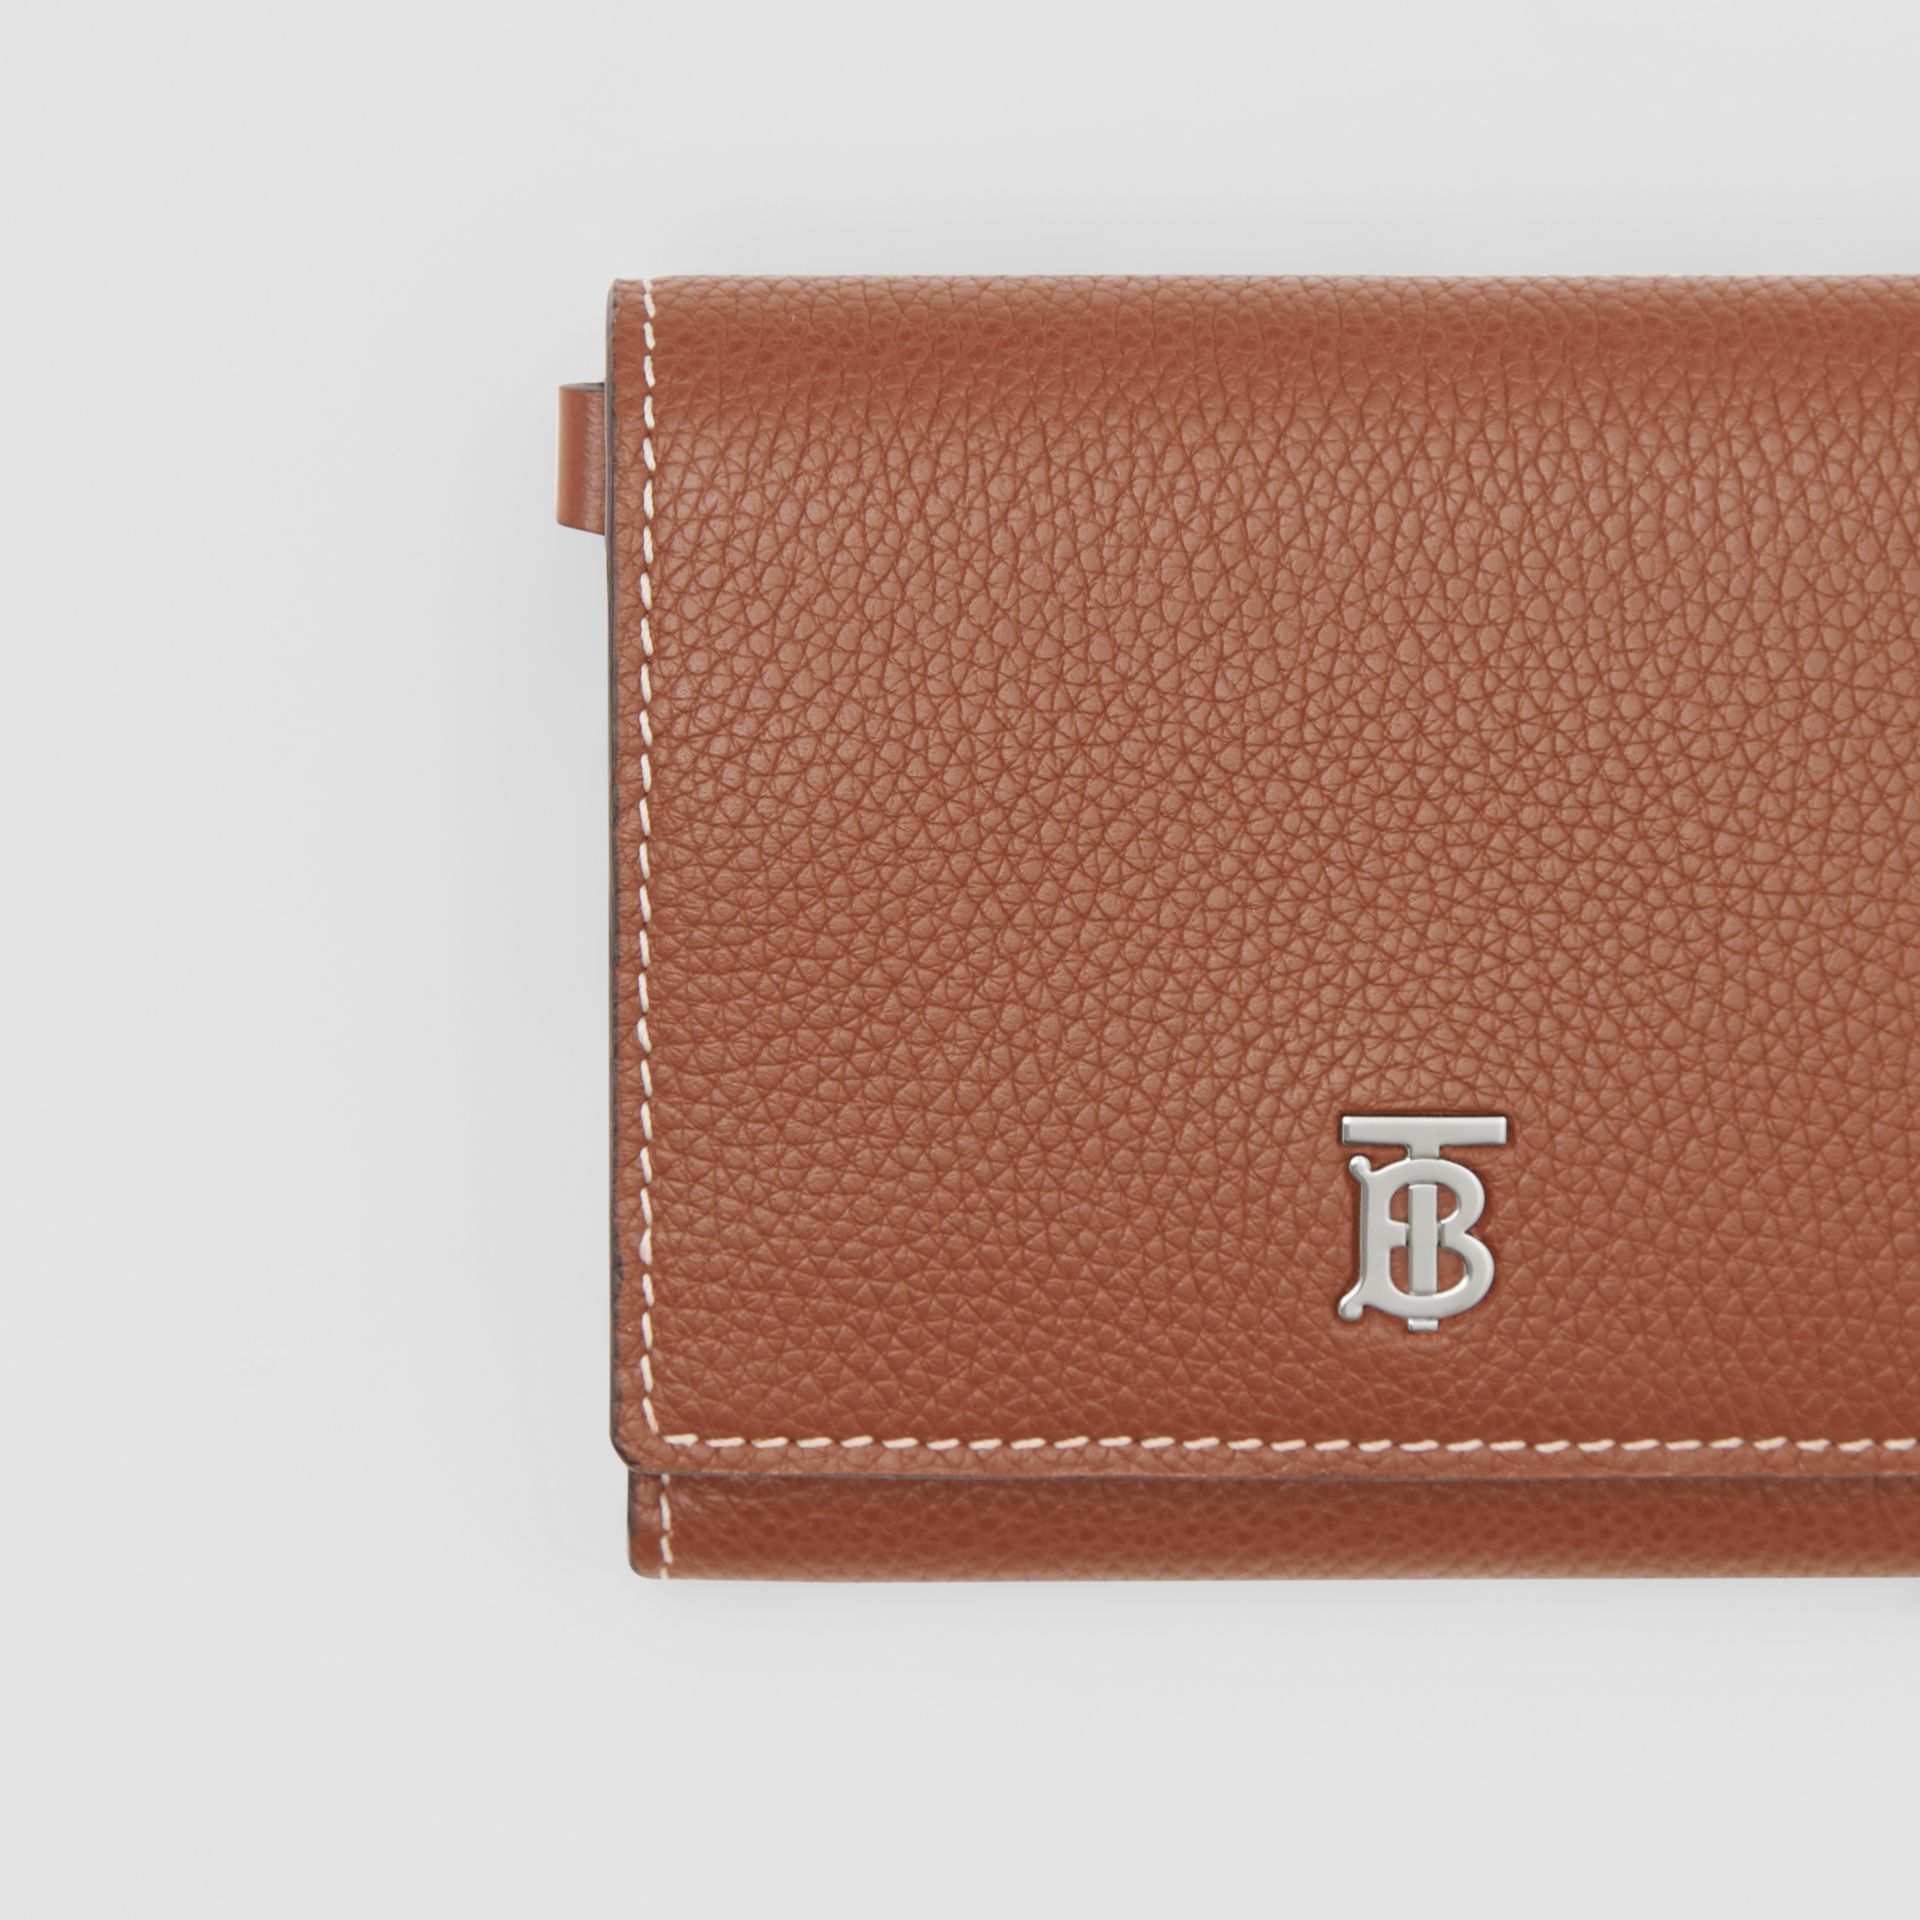 Small Grainy Leather Wallet with Detachable Strap in Tan | Burberry United Kingdom - gallery image 1